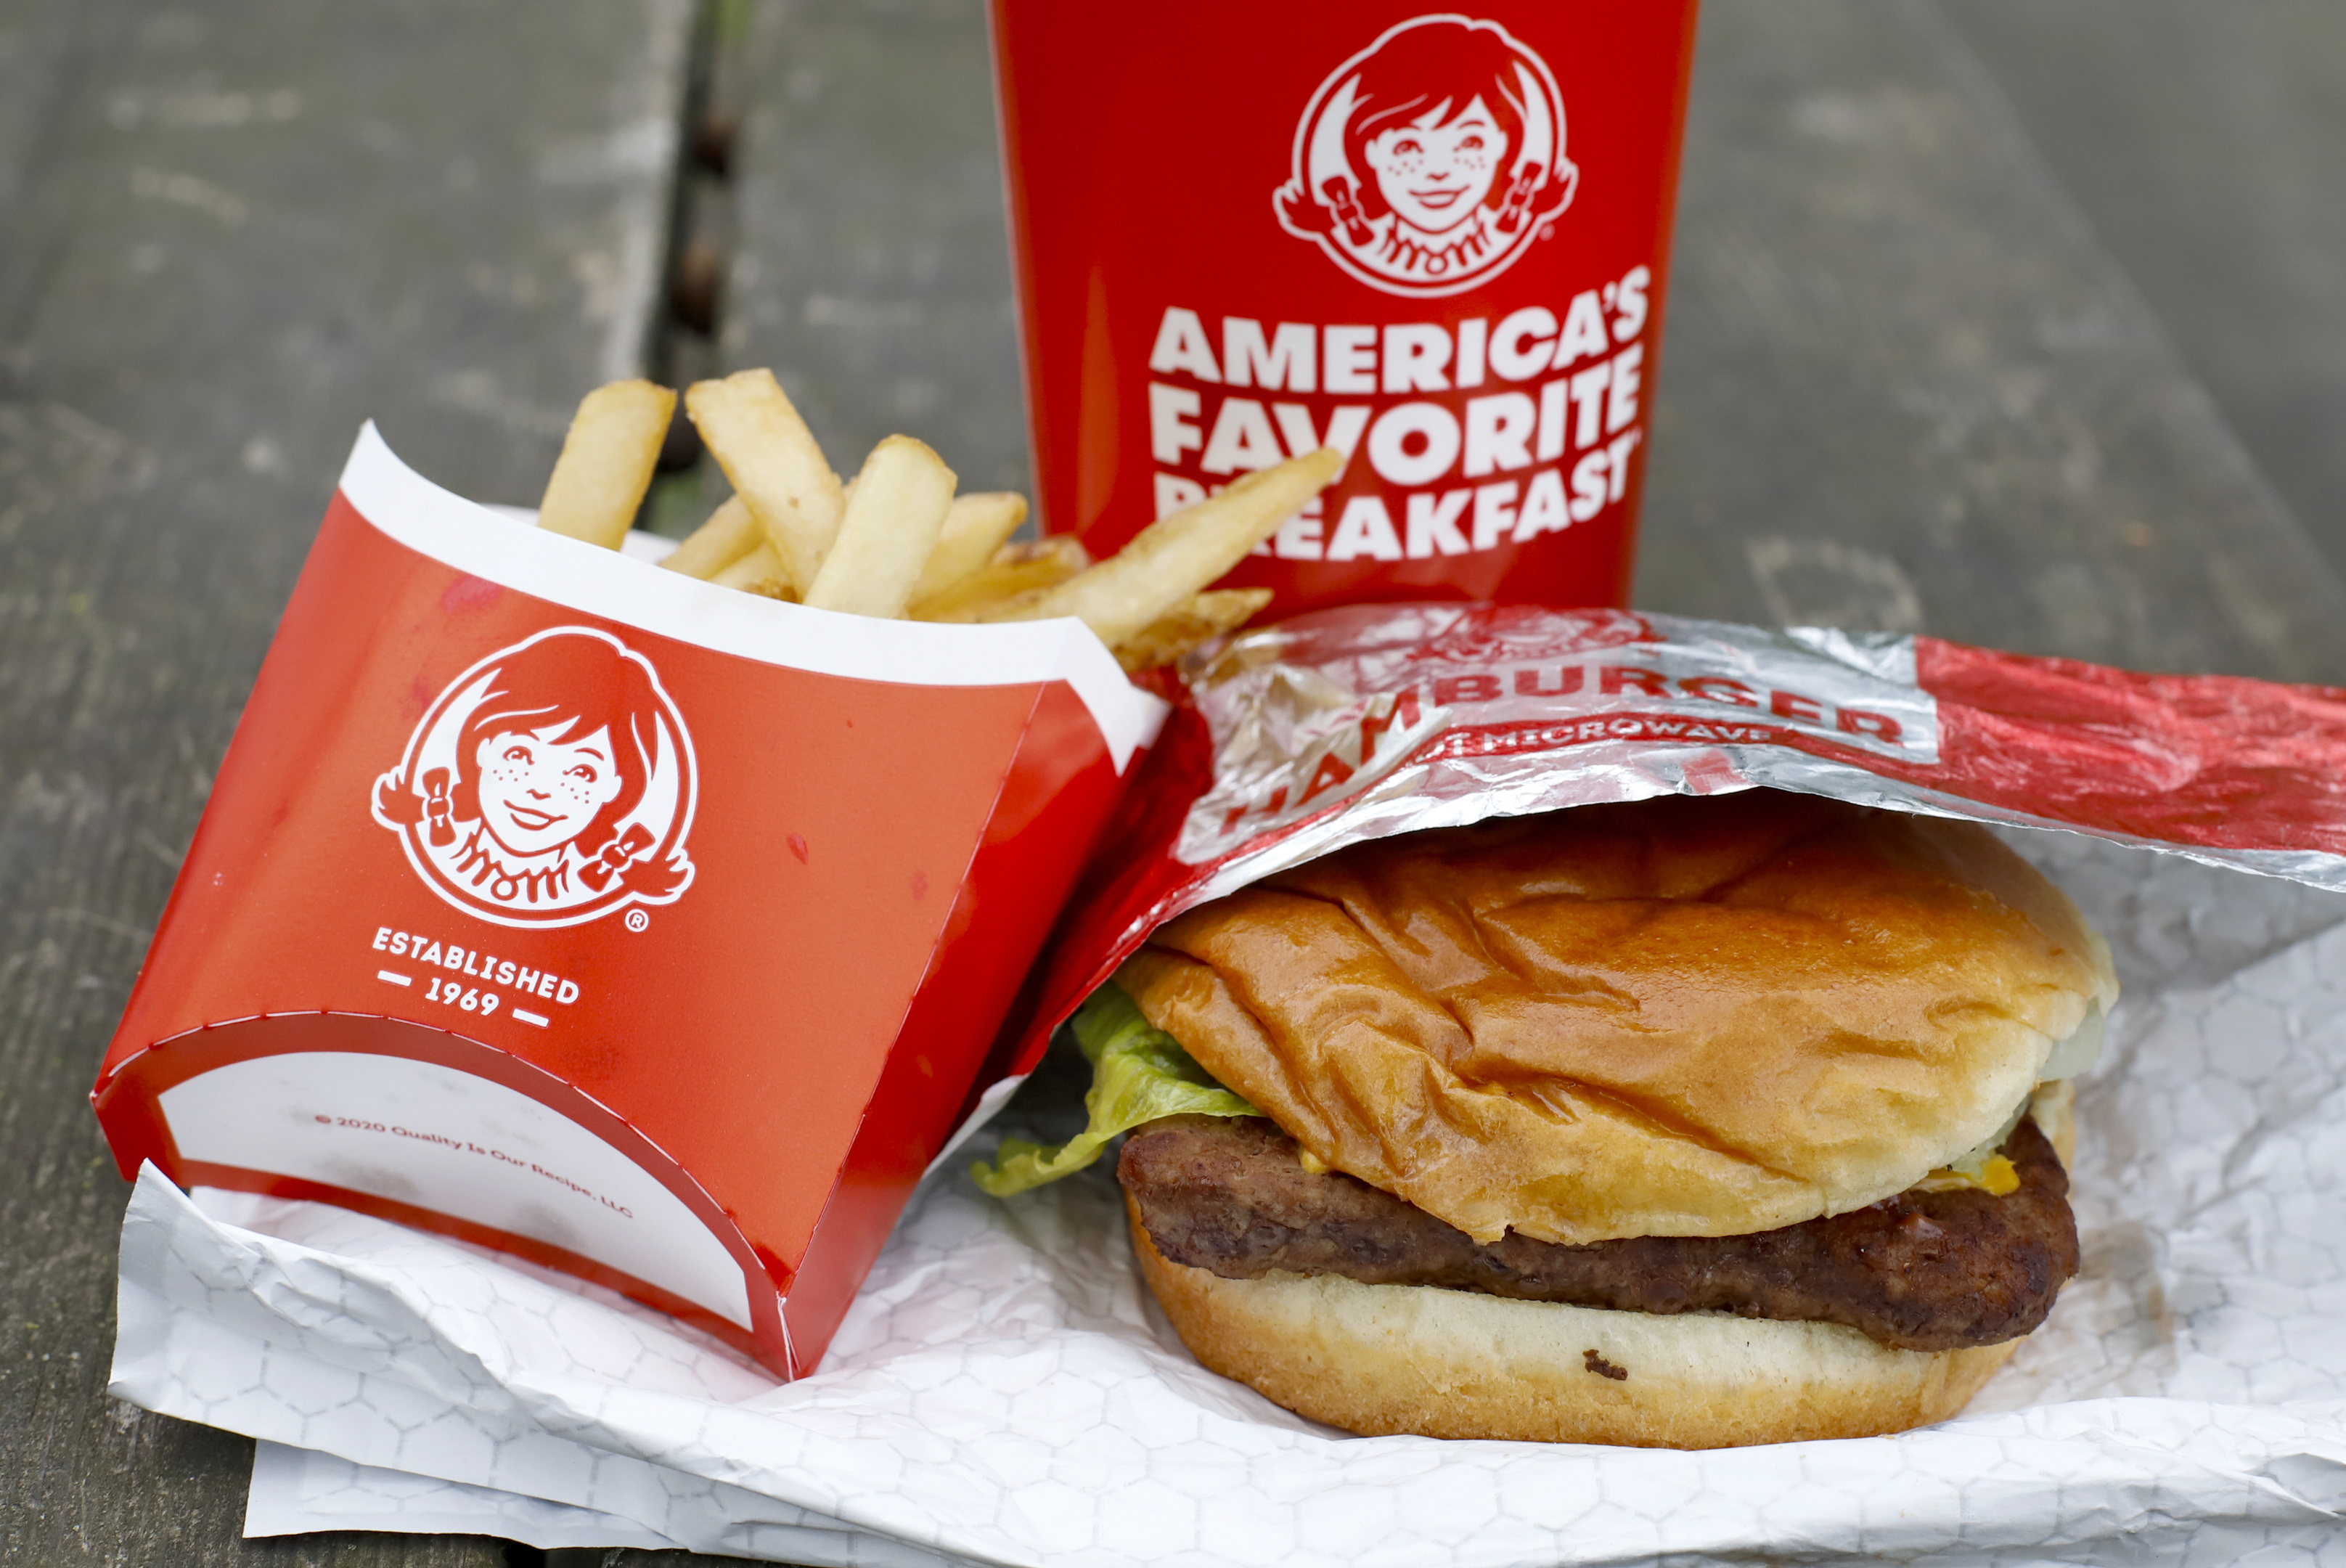 Wendy's plans to open 700 delivery-only kitchens by 2025 to meet the growing demand from people who want their fast food brought to them. The kitchens will primarily operate in urban neighborhoods in the U.S., Canada and the United Kingdom, the company said.